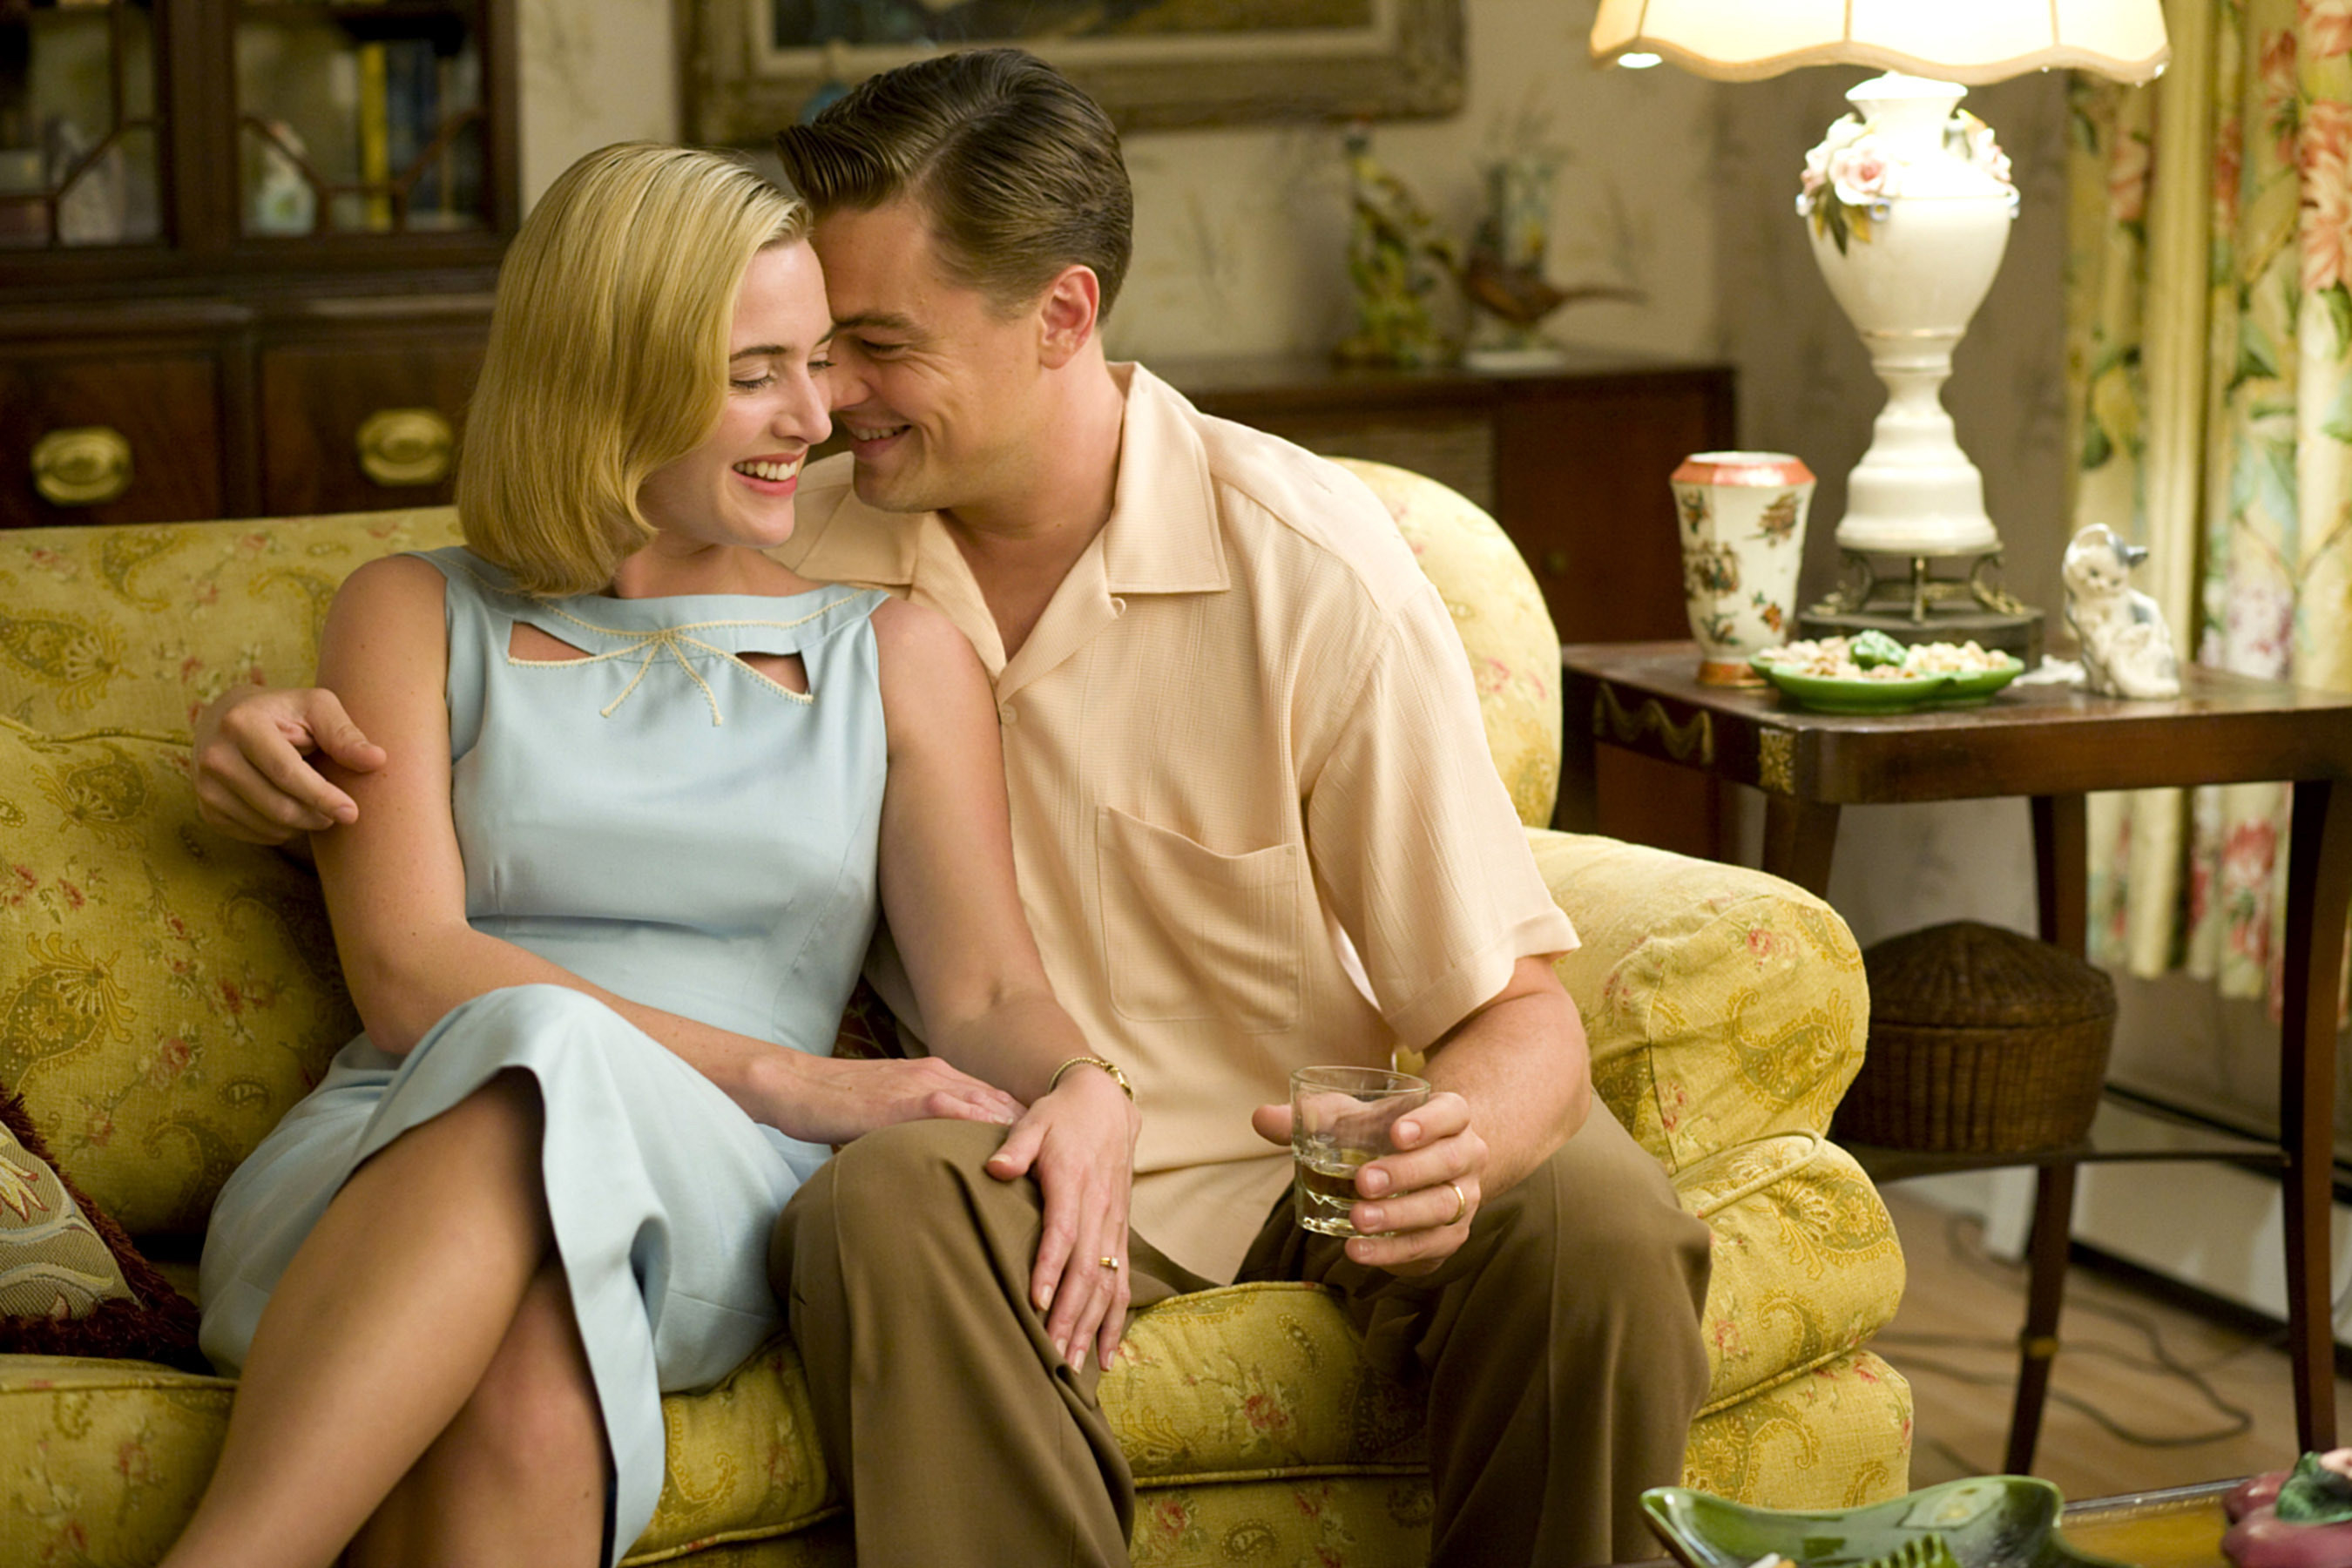 Kate Winslet and Leonardo DiCaprio get cozy and laugh on a couch